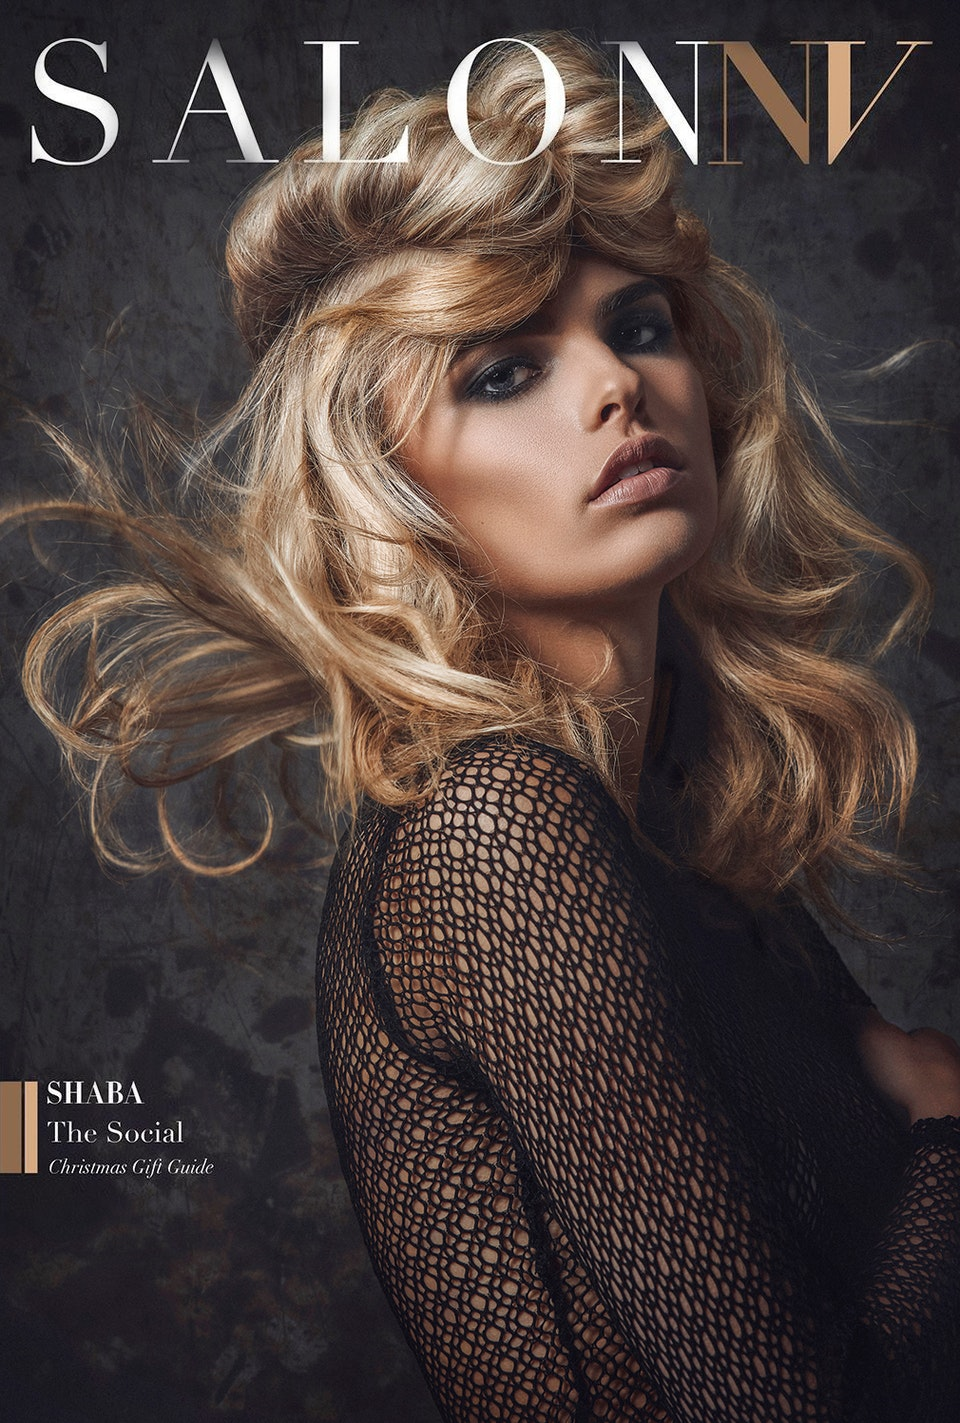 JARRED Photography - FRONT COVER SALON NV MAGAZINE